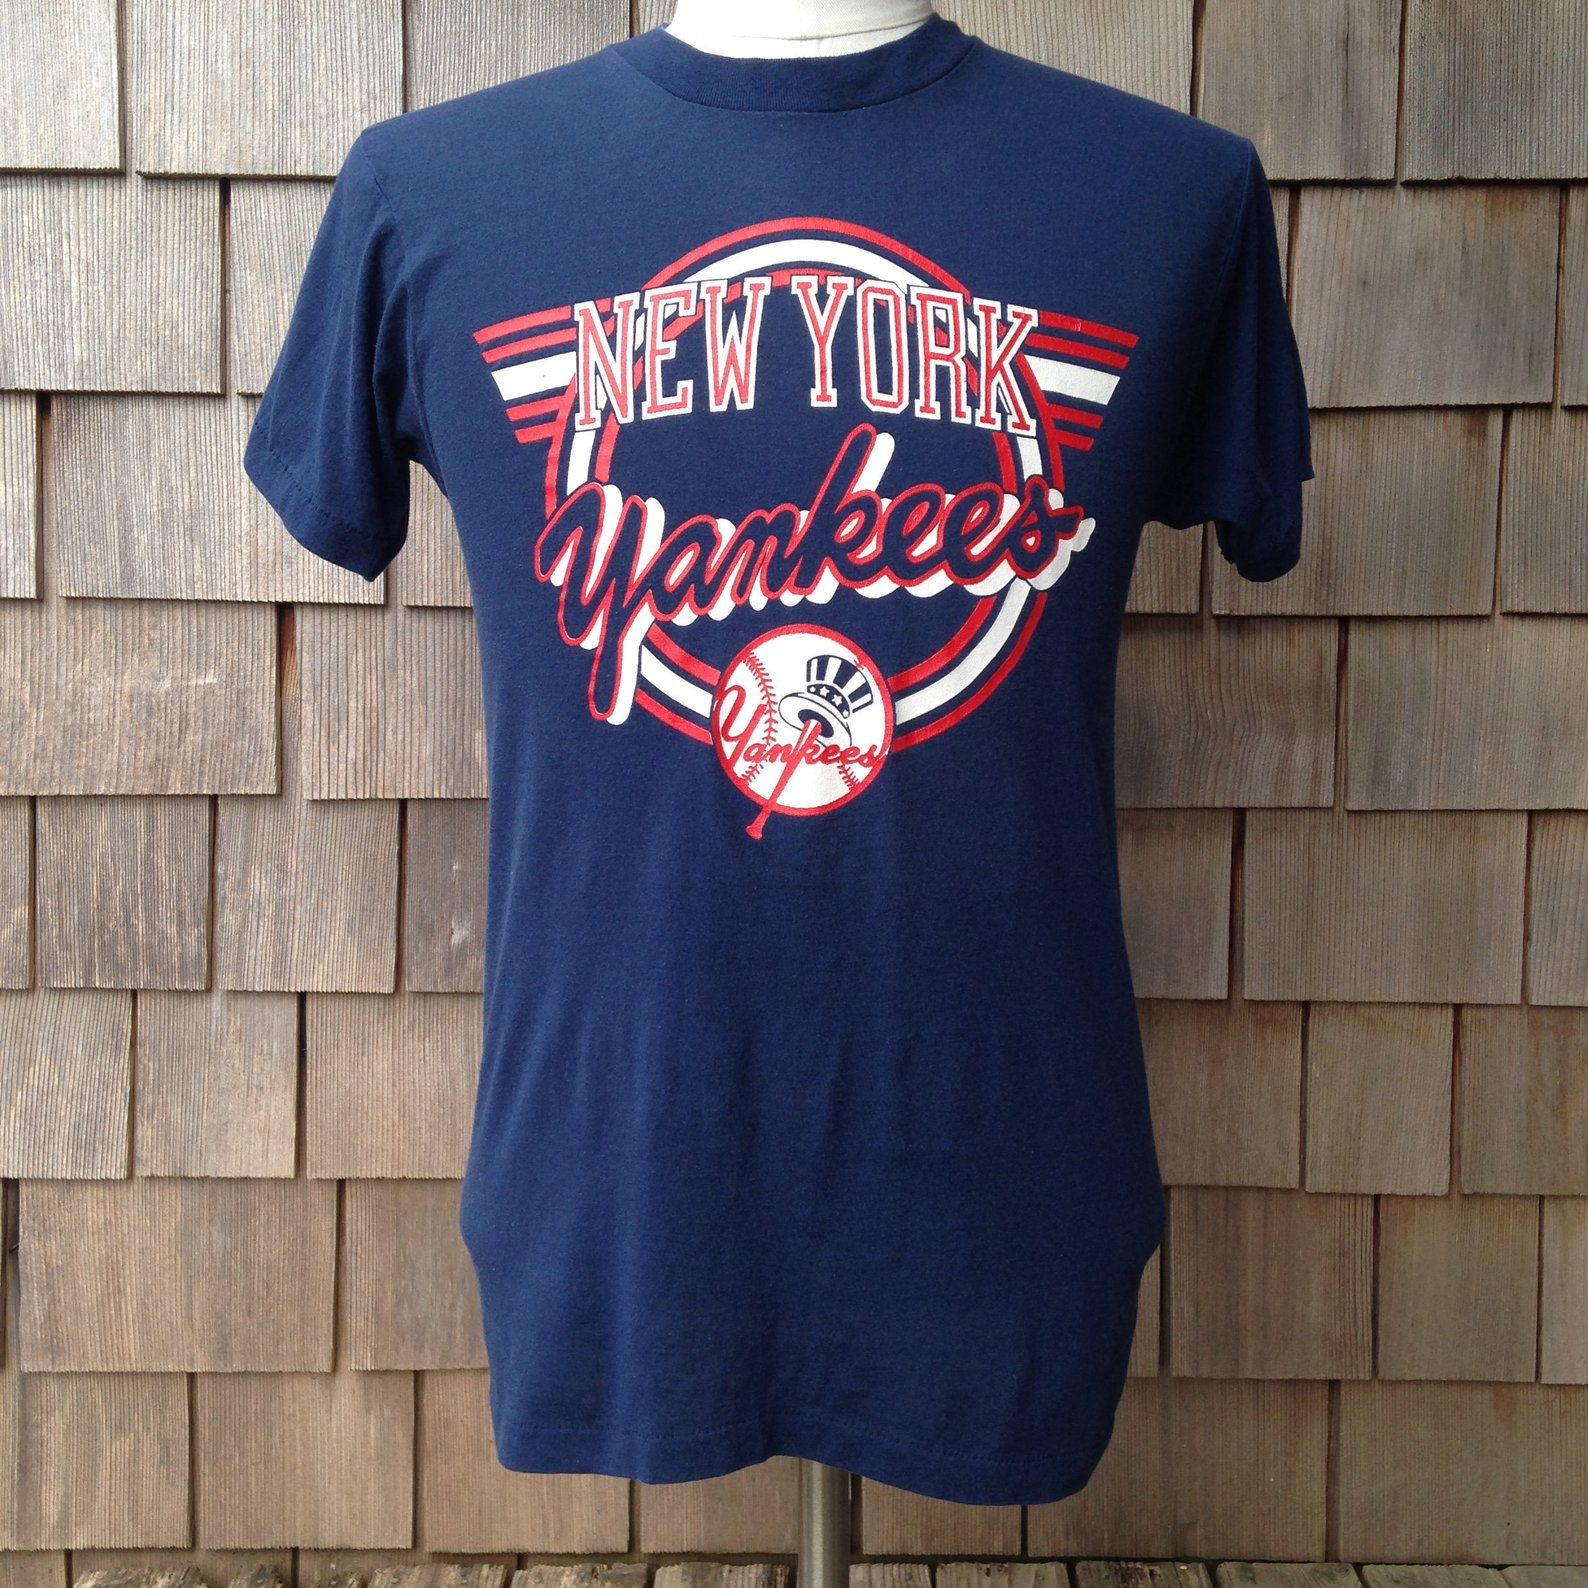 80s Vintage New York Yankees T Shirt By Screen Stars Small Etsy Yankees T Shirt New York Yankees Vintage New York